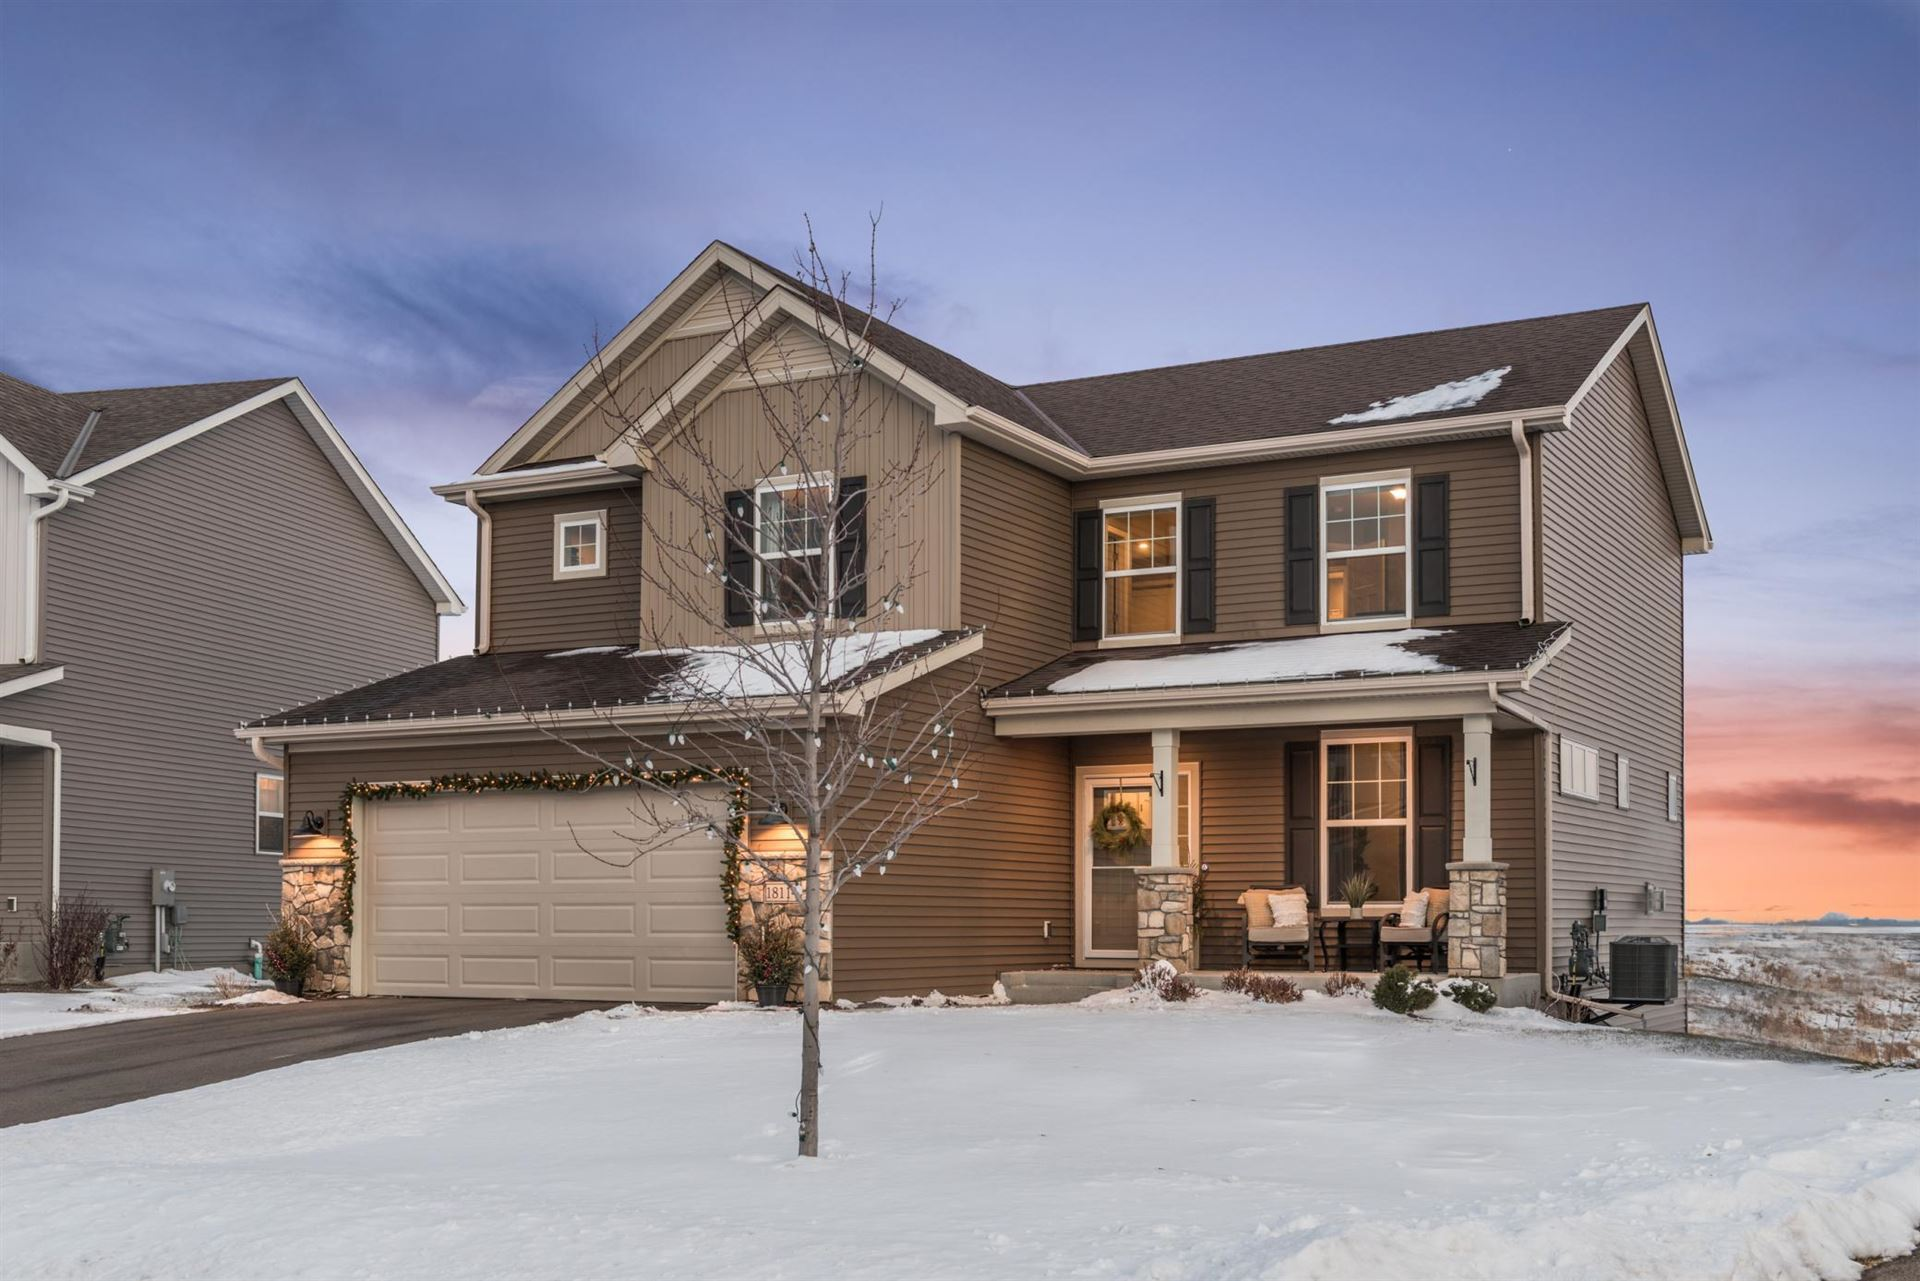 Photo of 18114 Gladstone Trail, Lakeville, MN 55044 (MLS # 5695740)